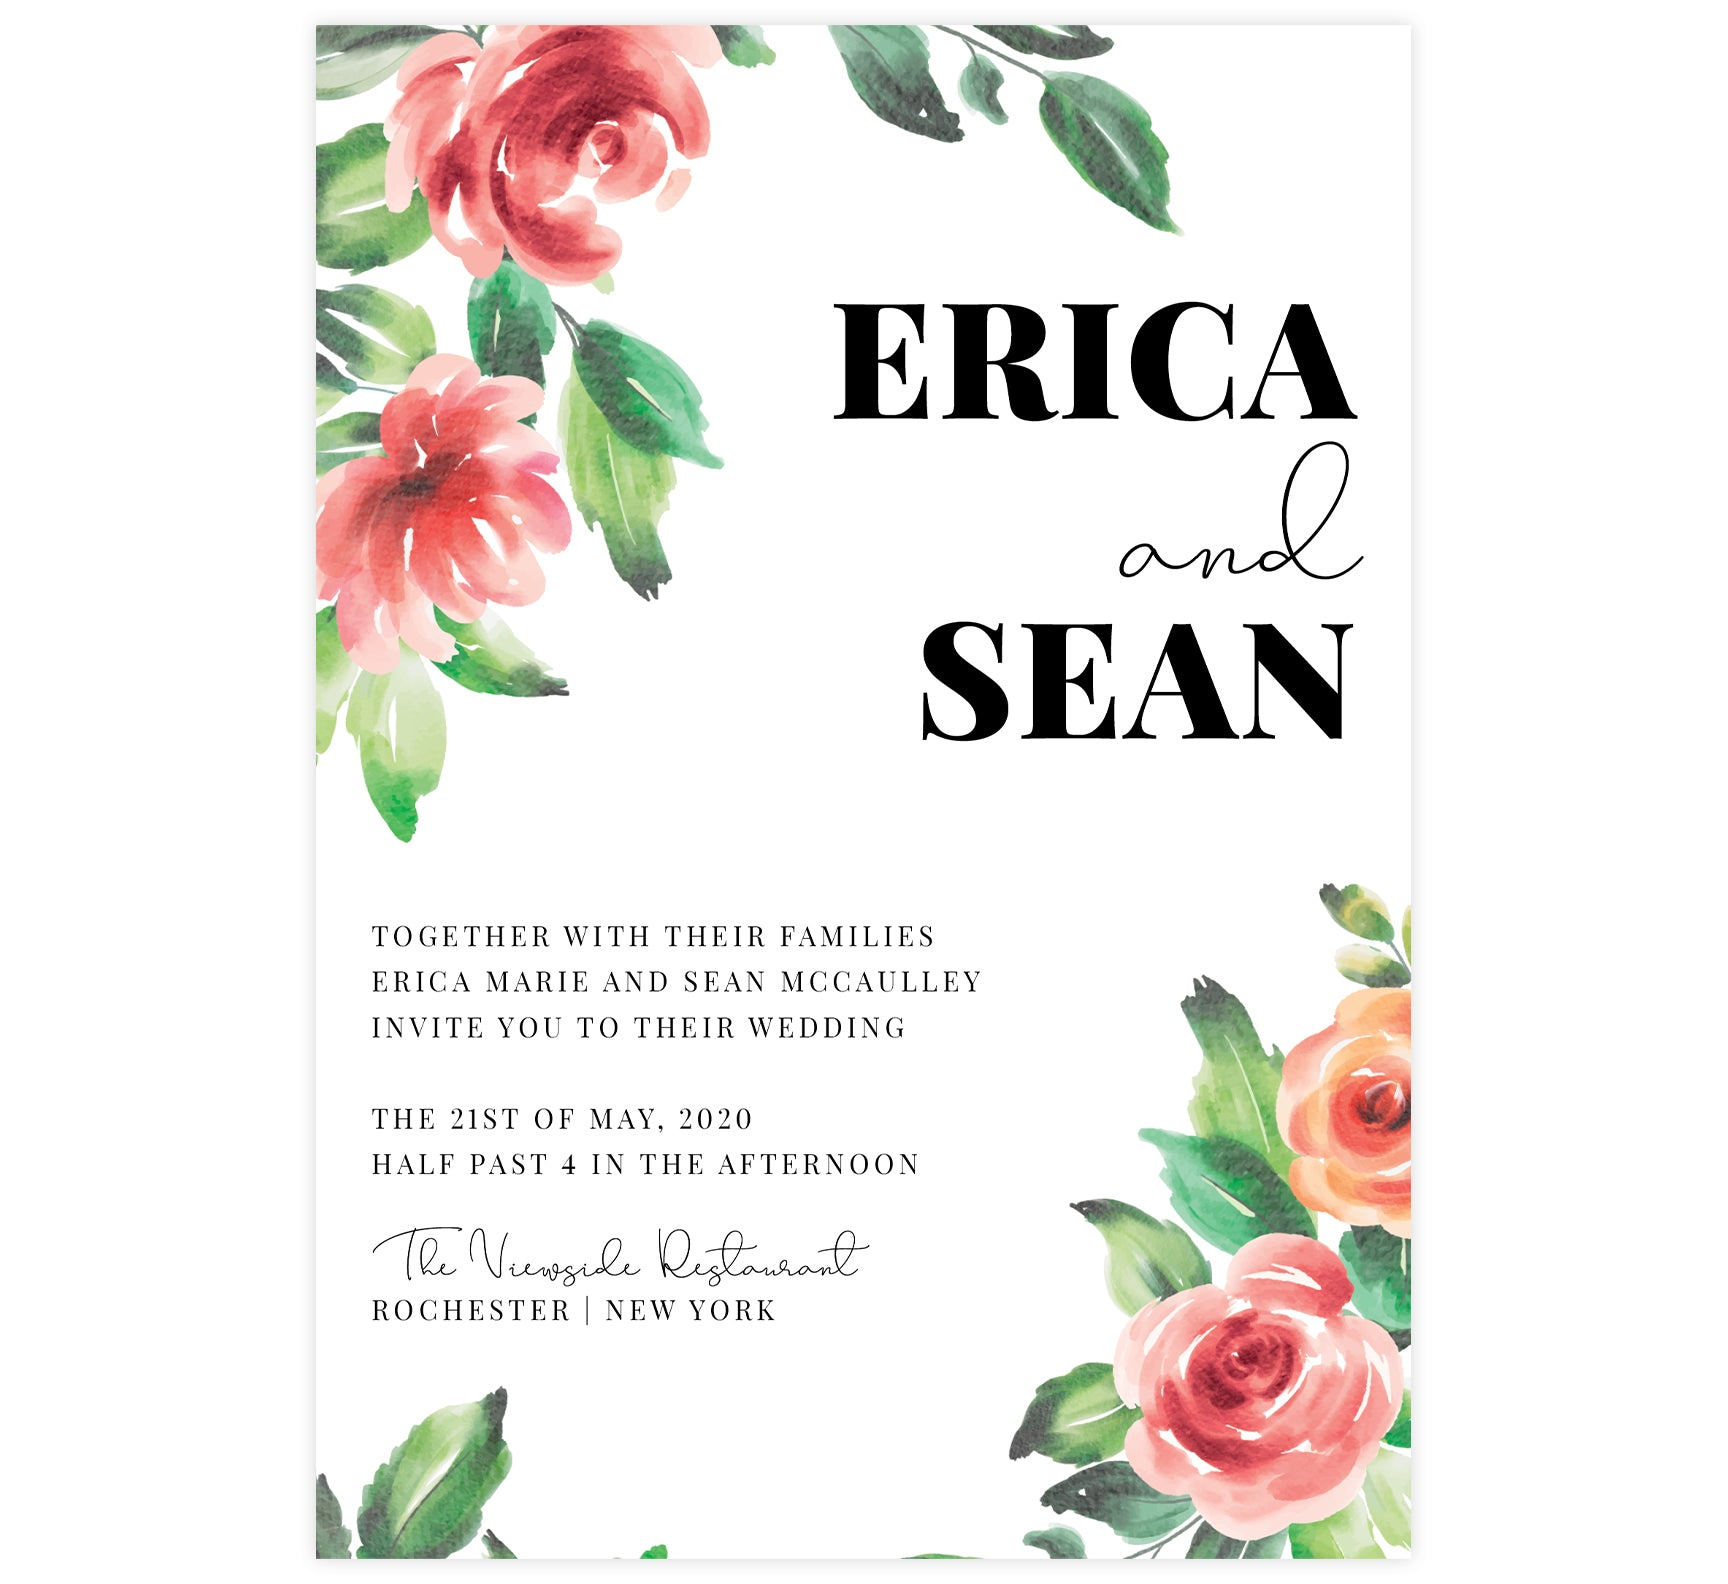 Watercolor roses wedding invitation; white background with big bold pink roses, green leaves and black text